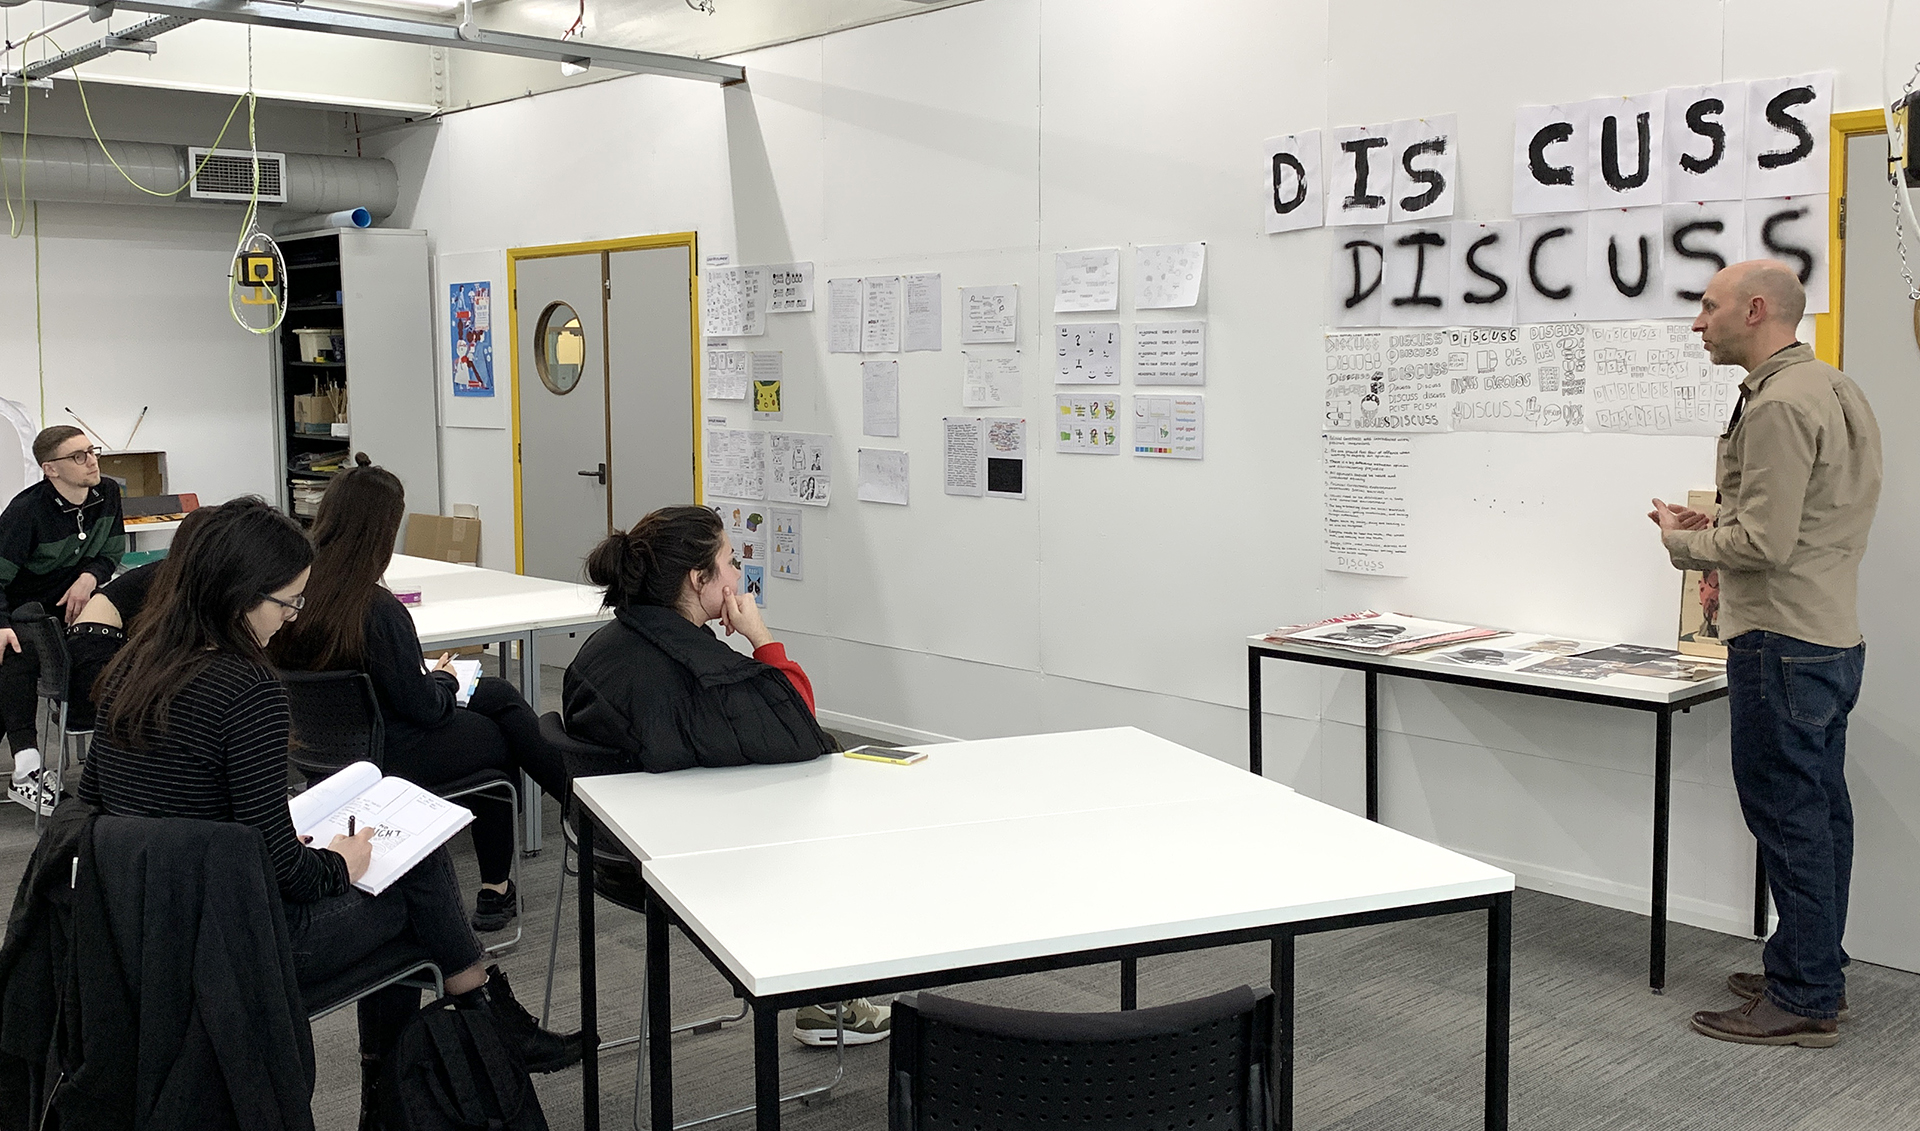 A photograph of students involved in a critique of work pinned on the wall